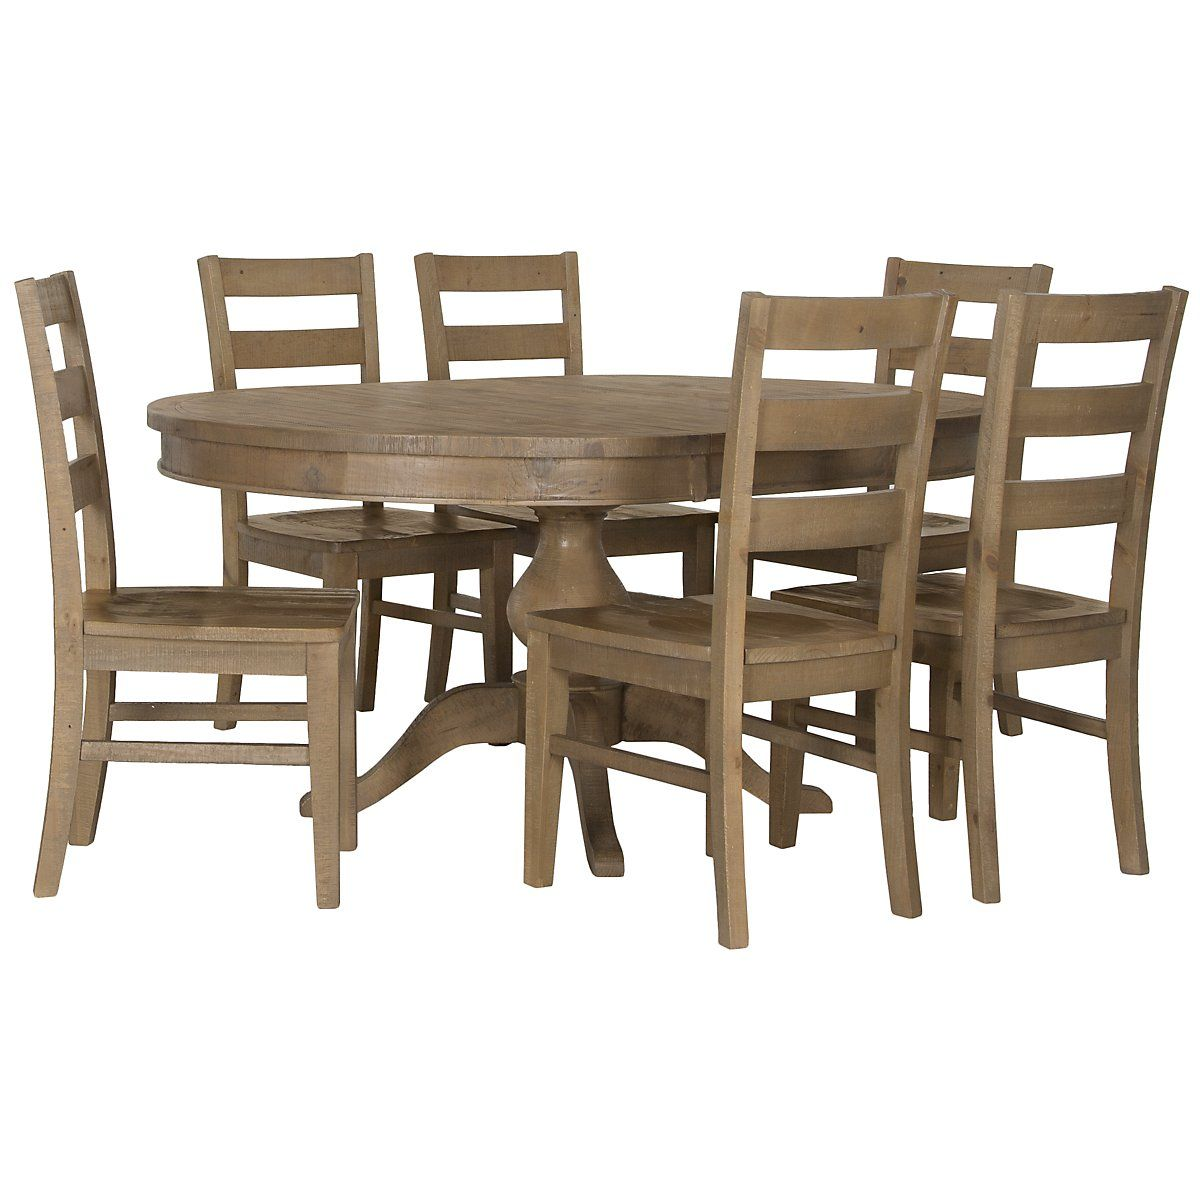 Round dining table and chairs for 4  Jaden Light Tone Round Table u  Wood Chairs  kitchen table